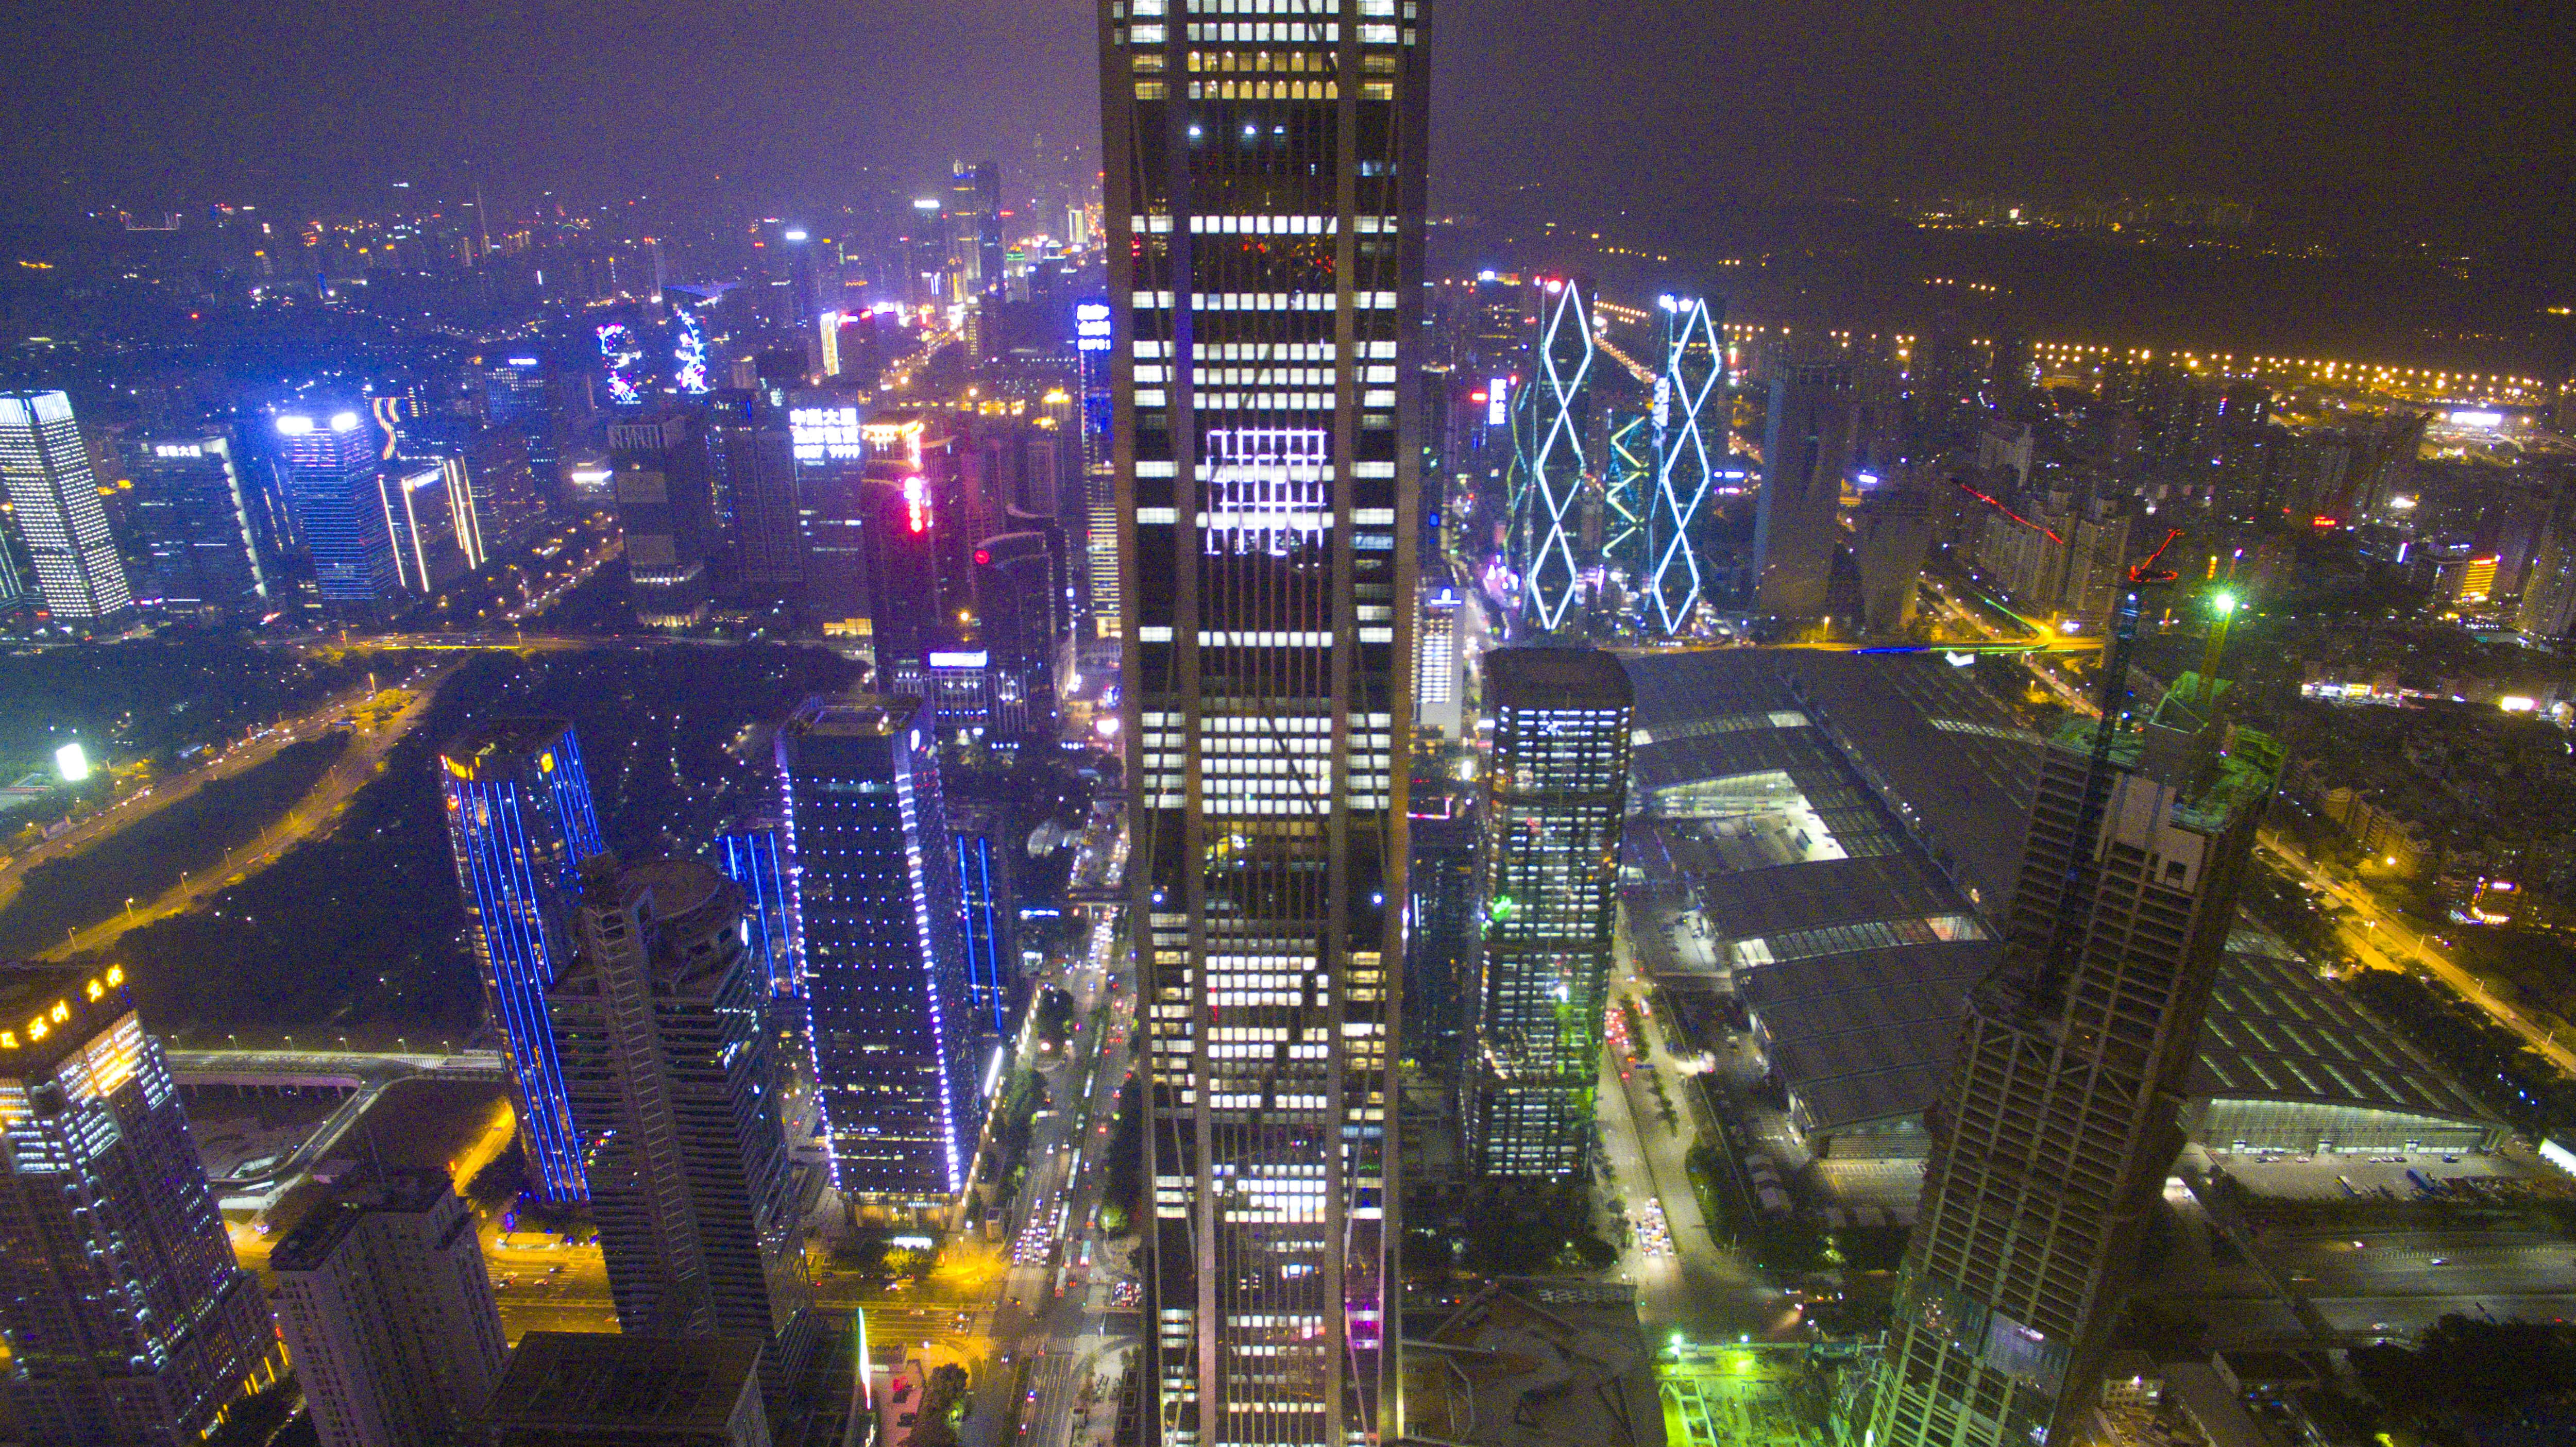 Aerial view of Ping An International Finance Centre in Shenzhen, Guangdong province, China.